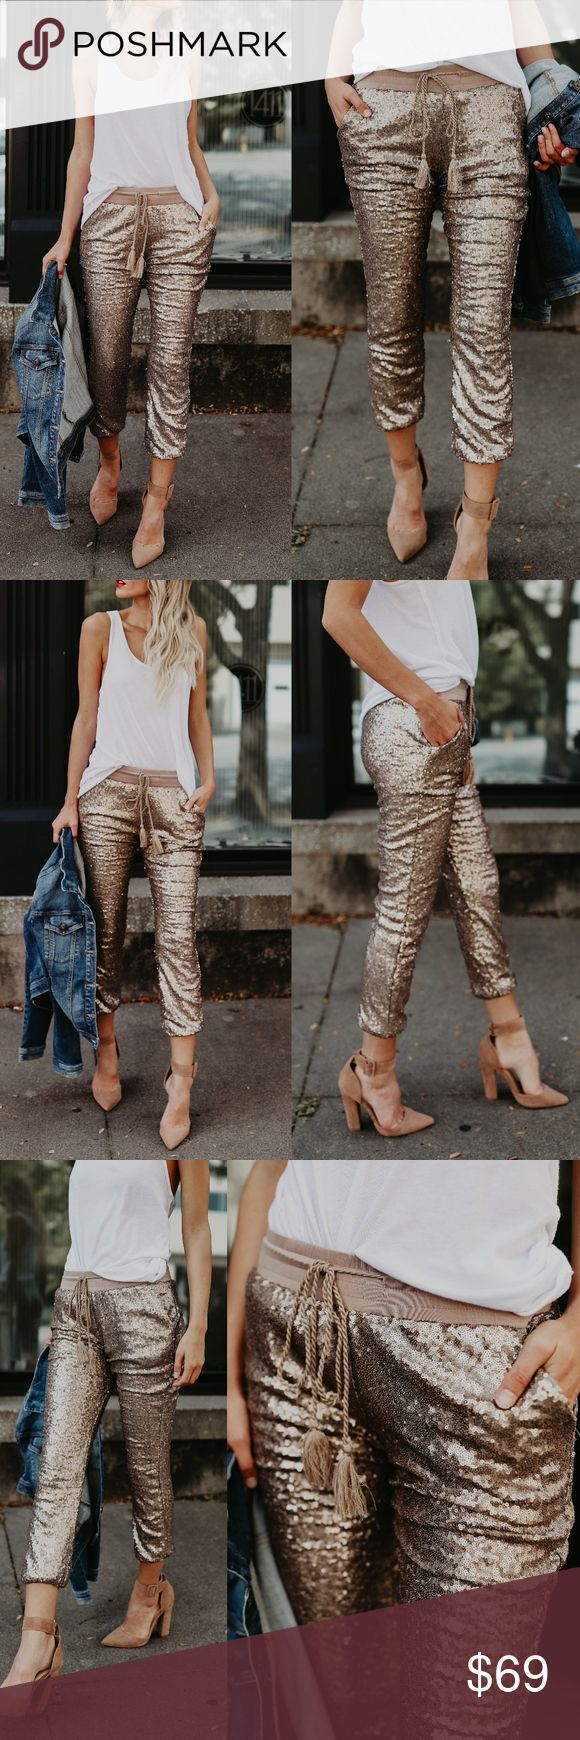 EVIE Sequin Joggers - ROSE GOLD Available in rose gold and silver. PRICE FIRM soft lining inside  NO TRADE  PRICE FIRM Bellanblue Pants Track Pants & Joggers